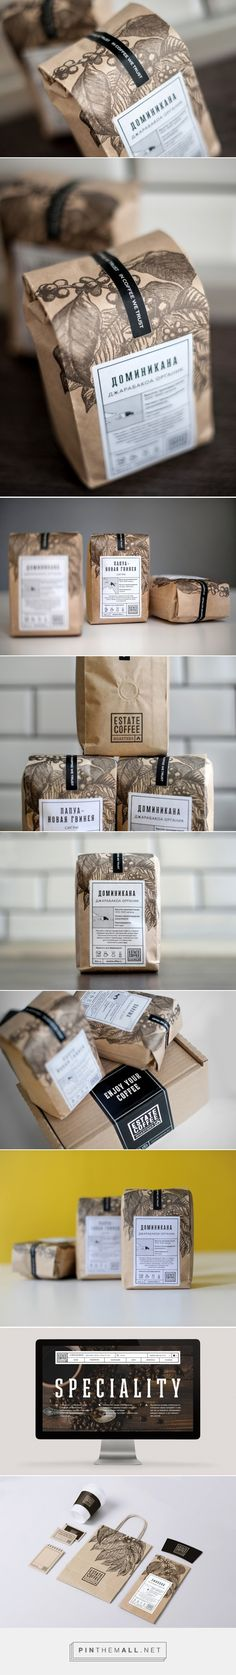 Estate Coffee Roasters packaging designed by AHEAD (Russia) - http://www.packagingoftheworld.com/2016/02/estate-coffee-roasters.html